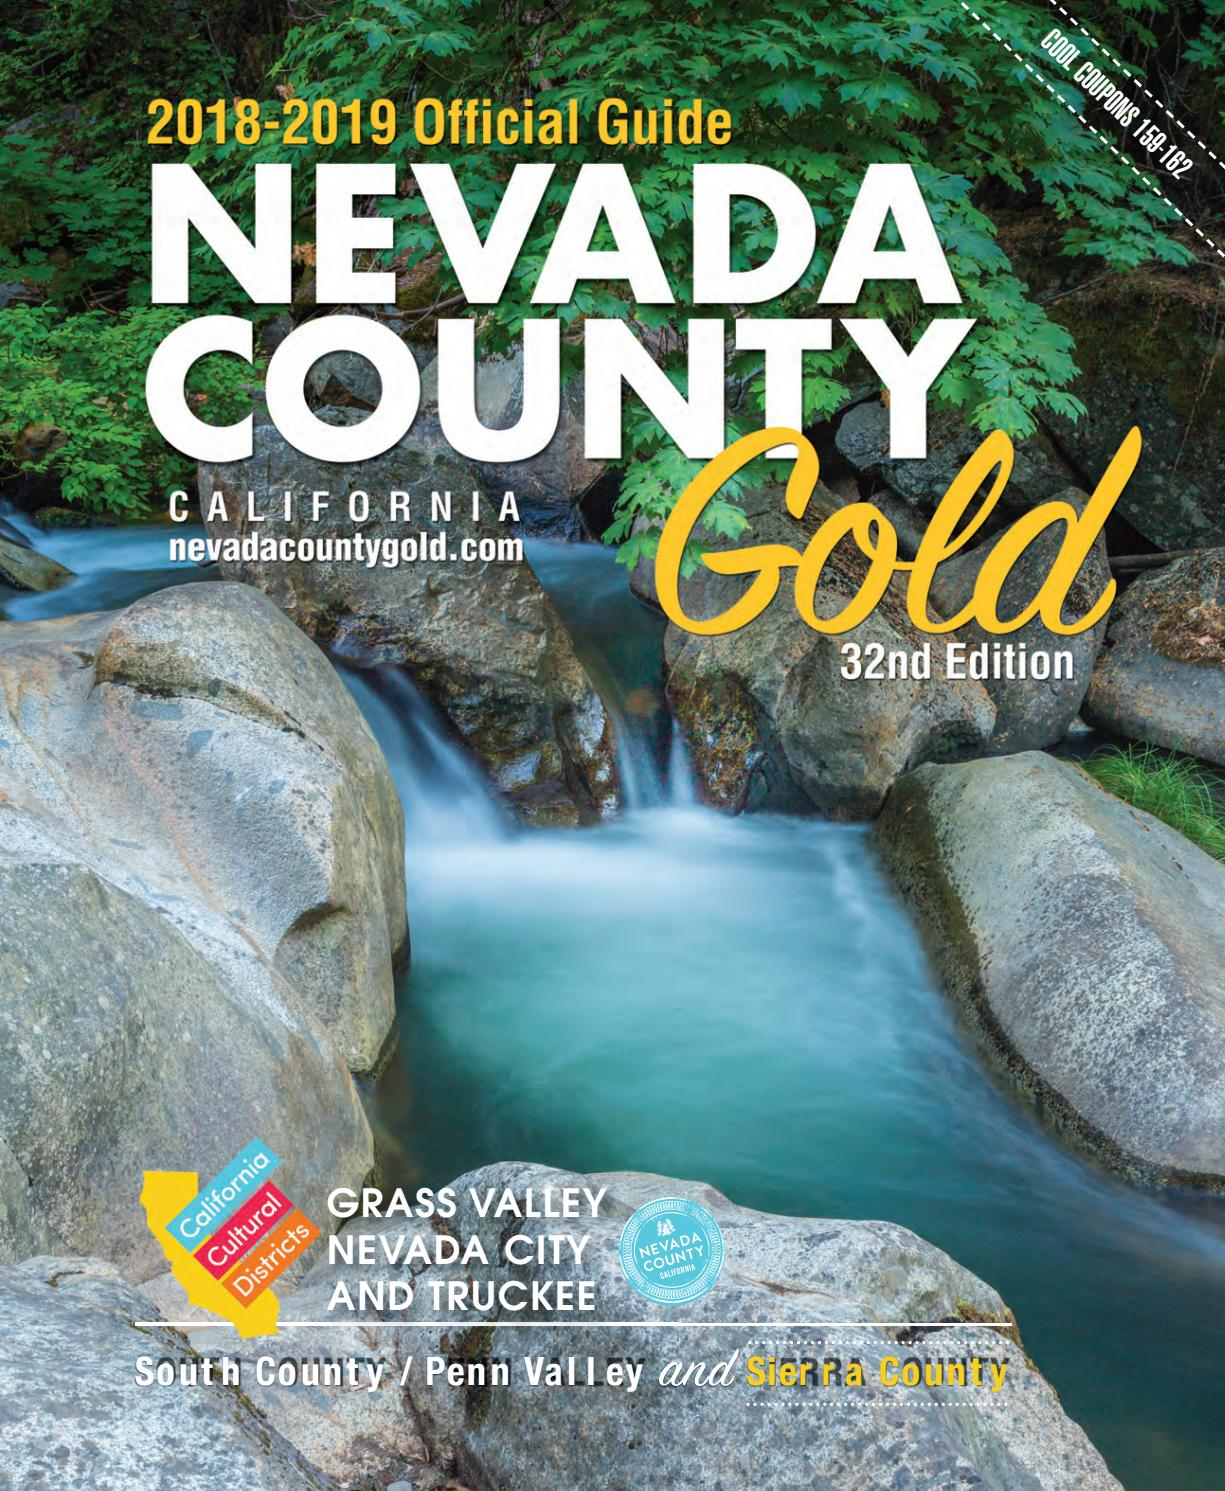 Cucina Restaurant Graeagle 2018 2019 Nevada County Gold Magazine By Symang Issuu